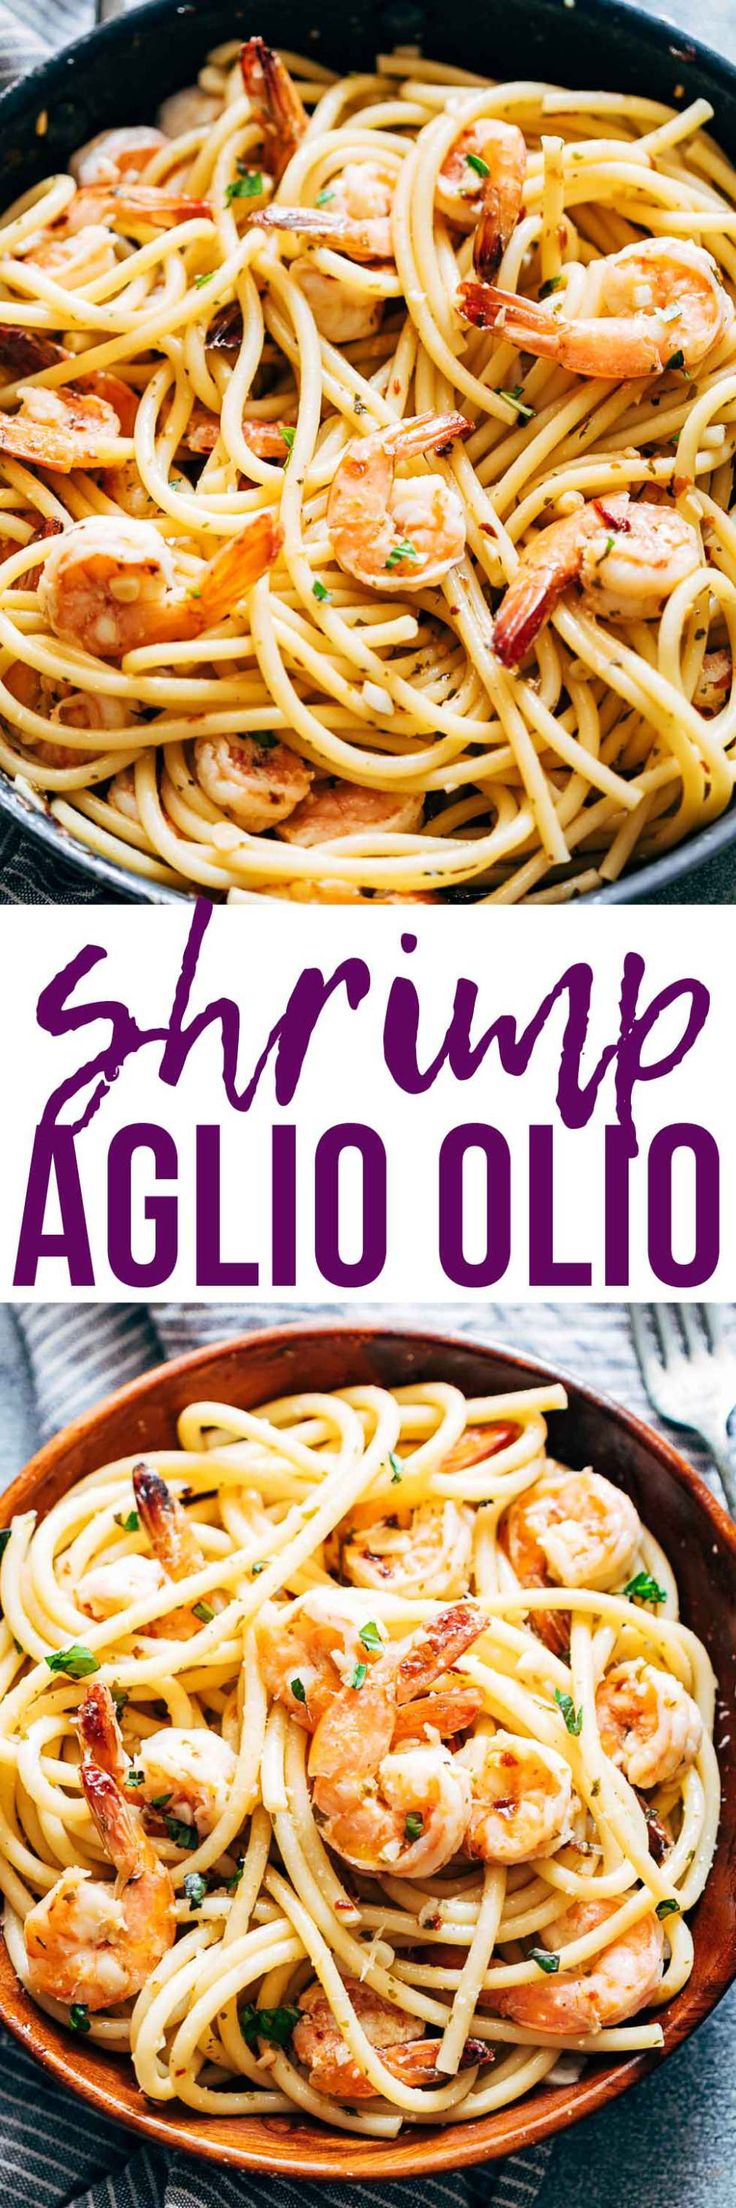 Shrimp Spaghetti Aglio Olio is a 5 ingredient pasta recipe (shrimp or prawns, olive oil, garlic, peperoncino or chilli flakes and parsley) thats ready in 20 minutes and has the easiest, most delicious pasta sauce you'll ever make! Great when you want fast